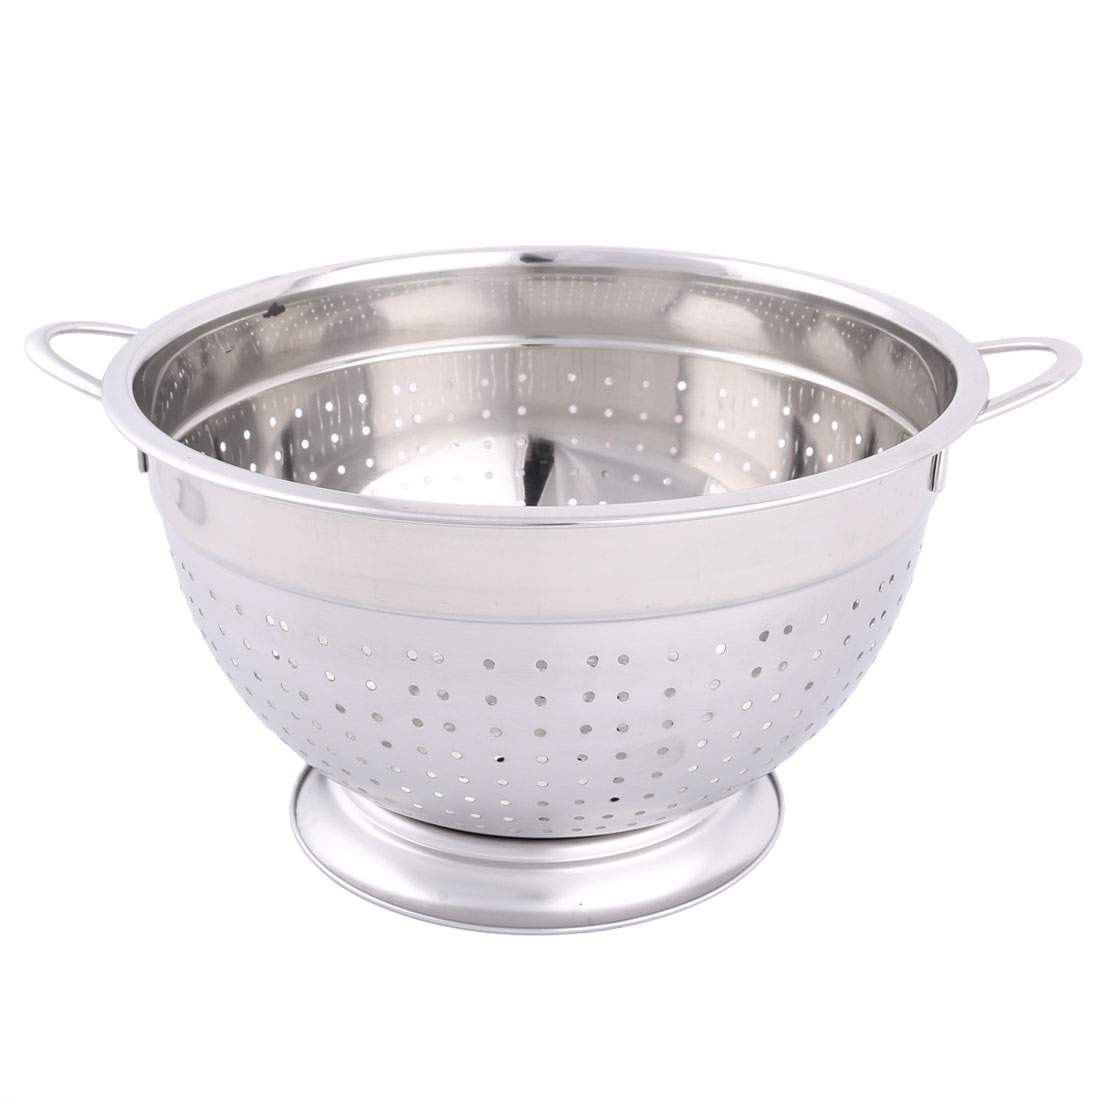 Household Stainless Steel Fruit Vegetable Nuts Drain Basket Silver Tone 28cm Dia